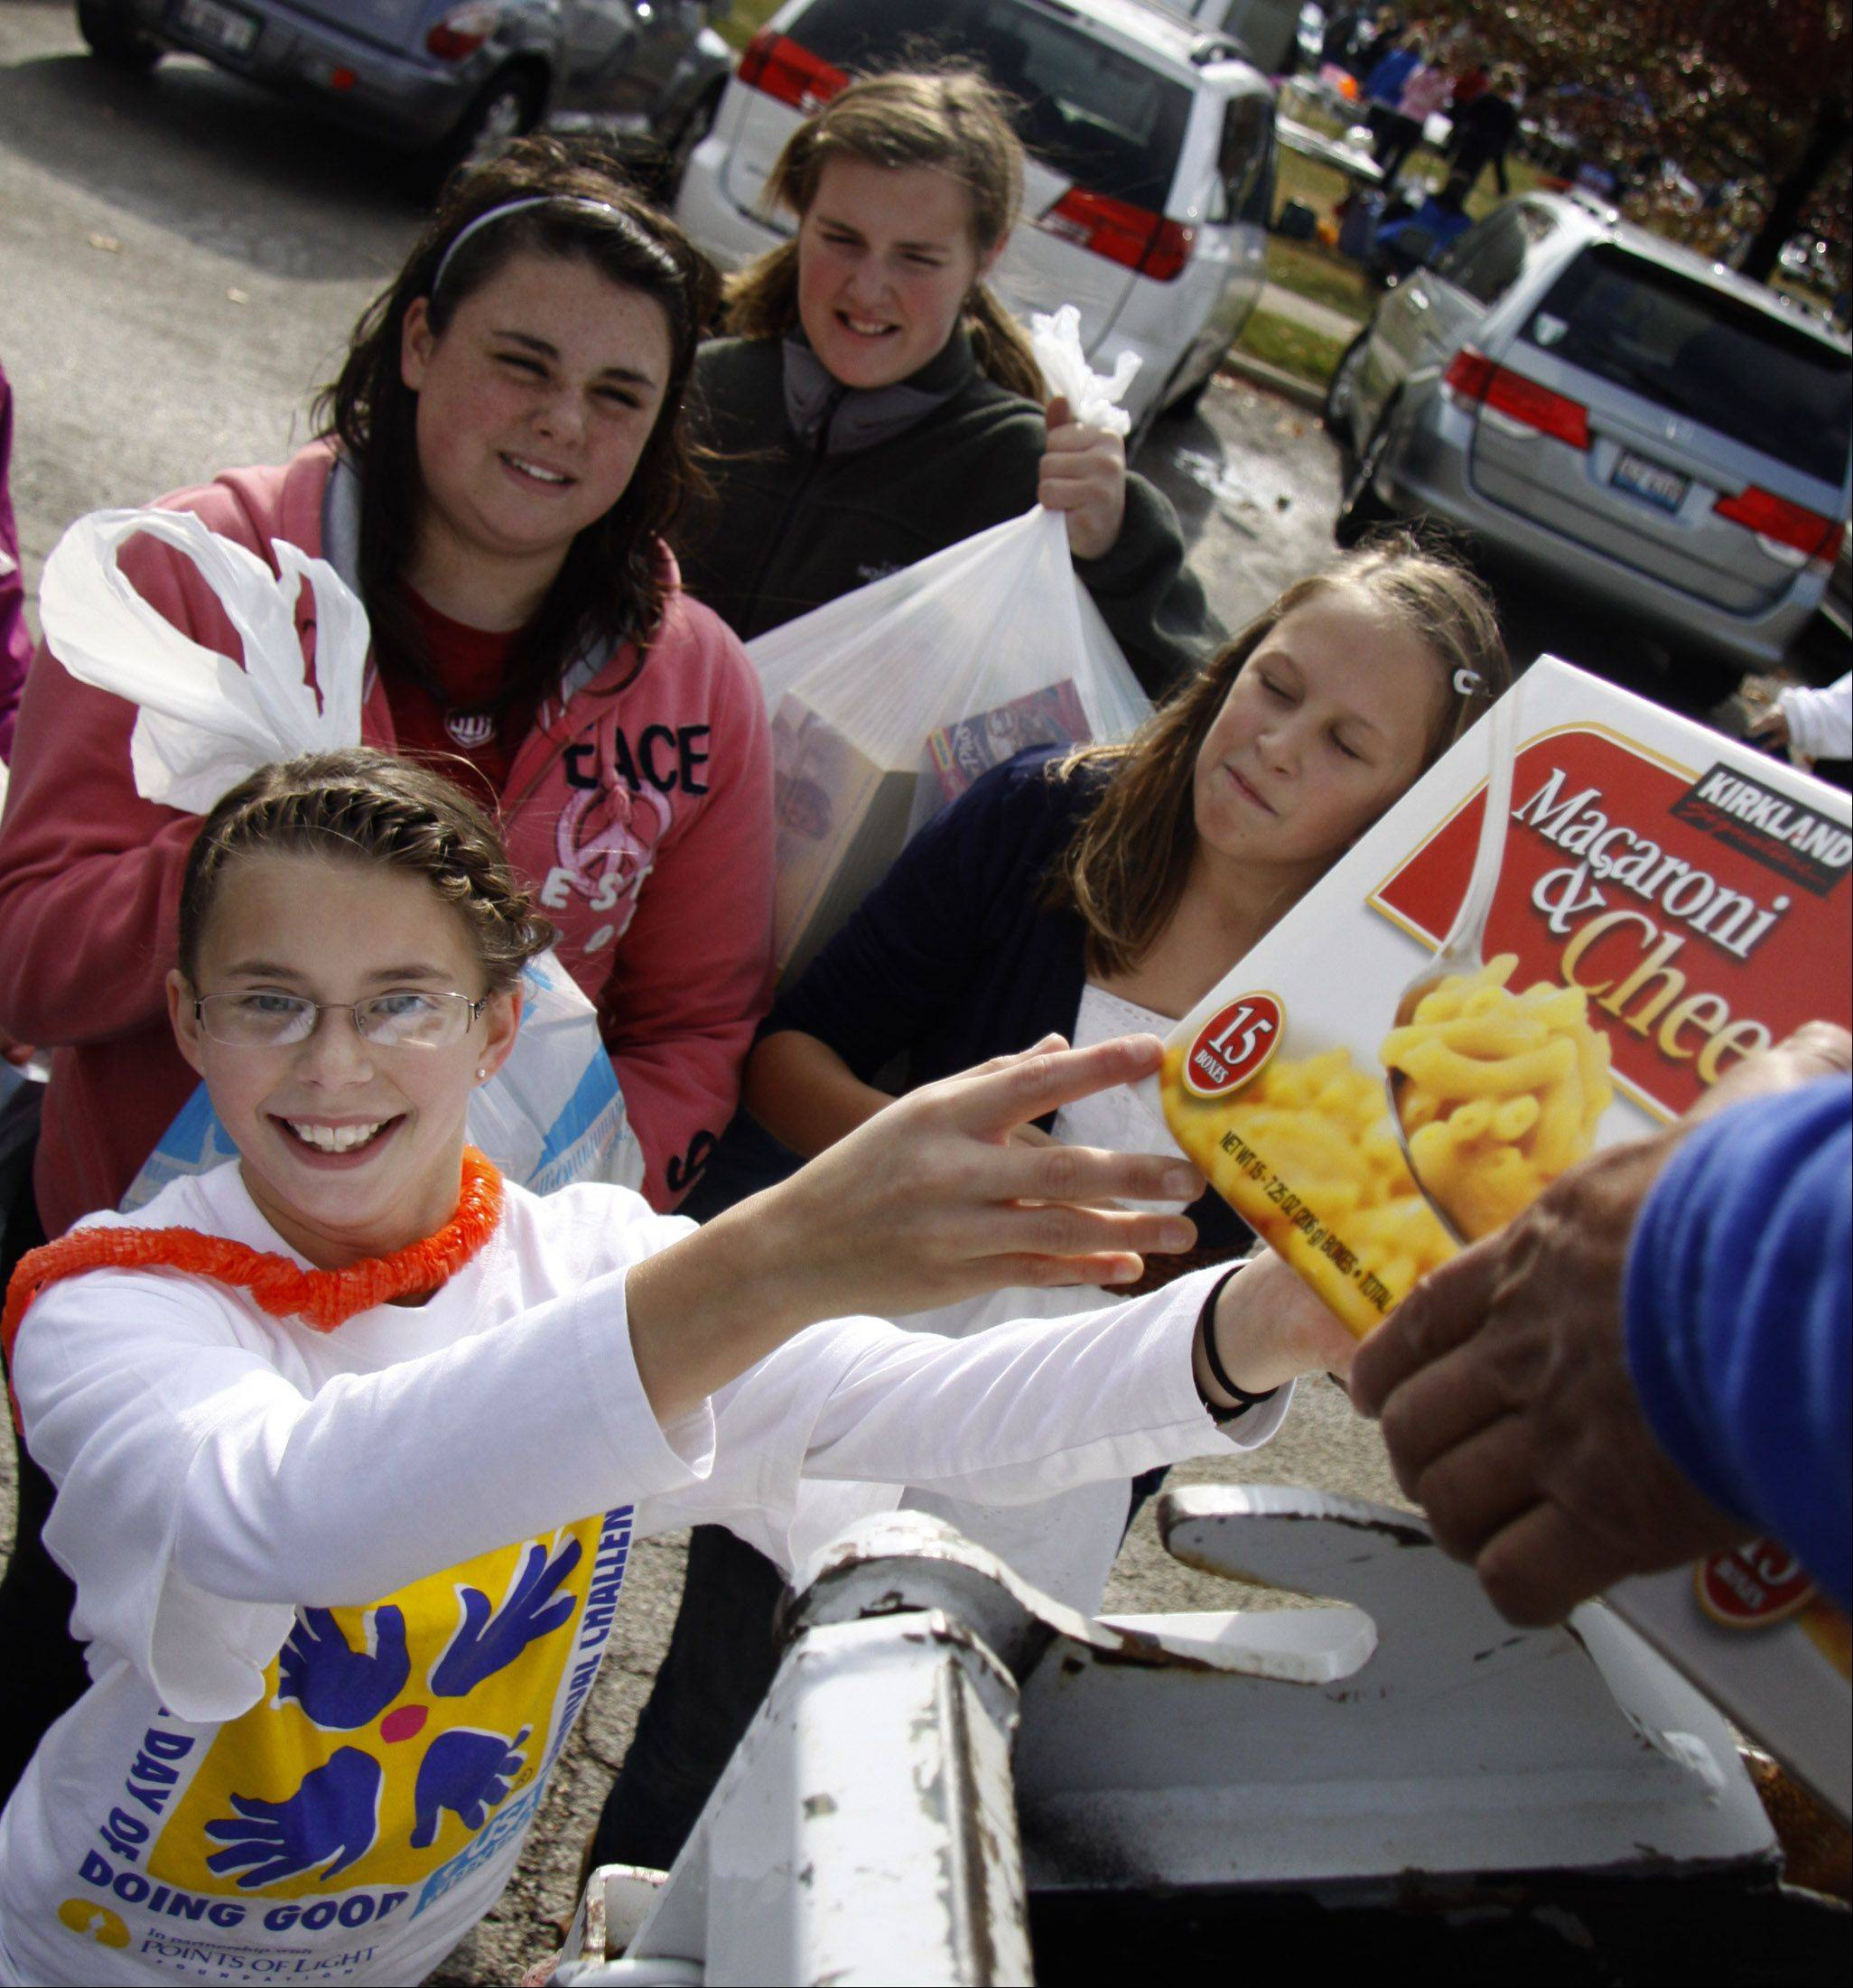 Volunteers hope to collect more than 40,000 pounds of food Saturday during Wheaton�s annual �Stuff-a-Truck with Food� drive as part of the city�s Make a Difference Day celebration.